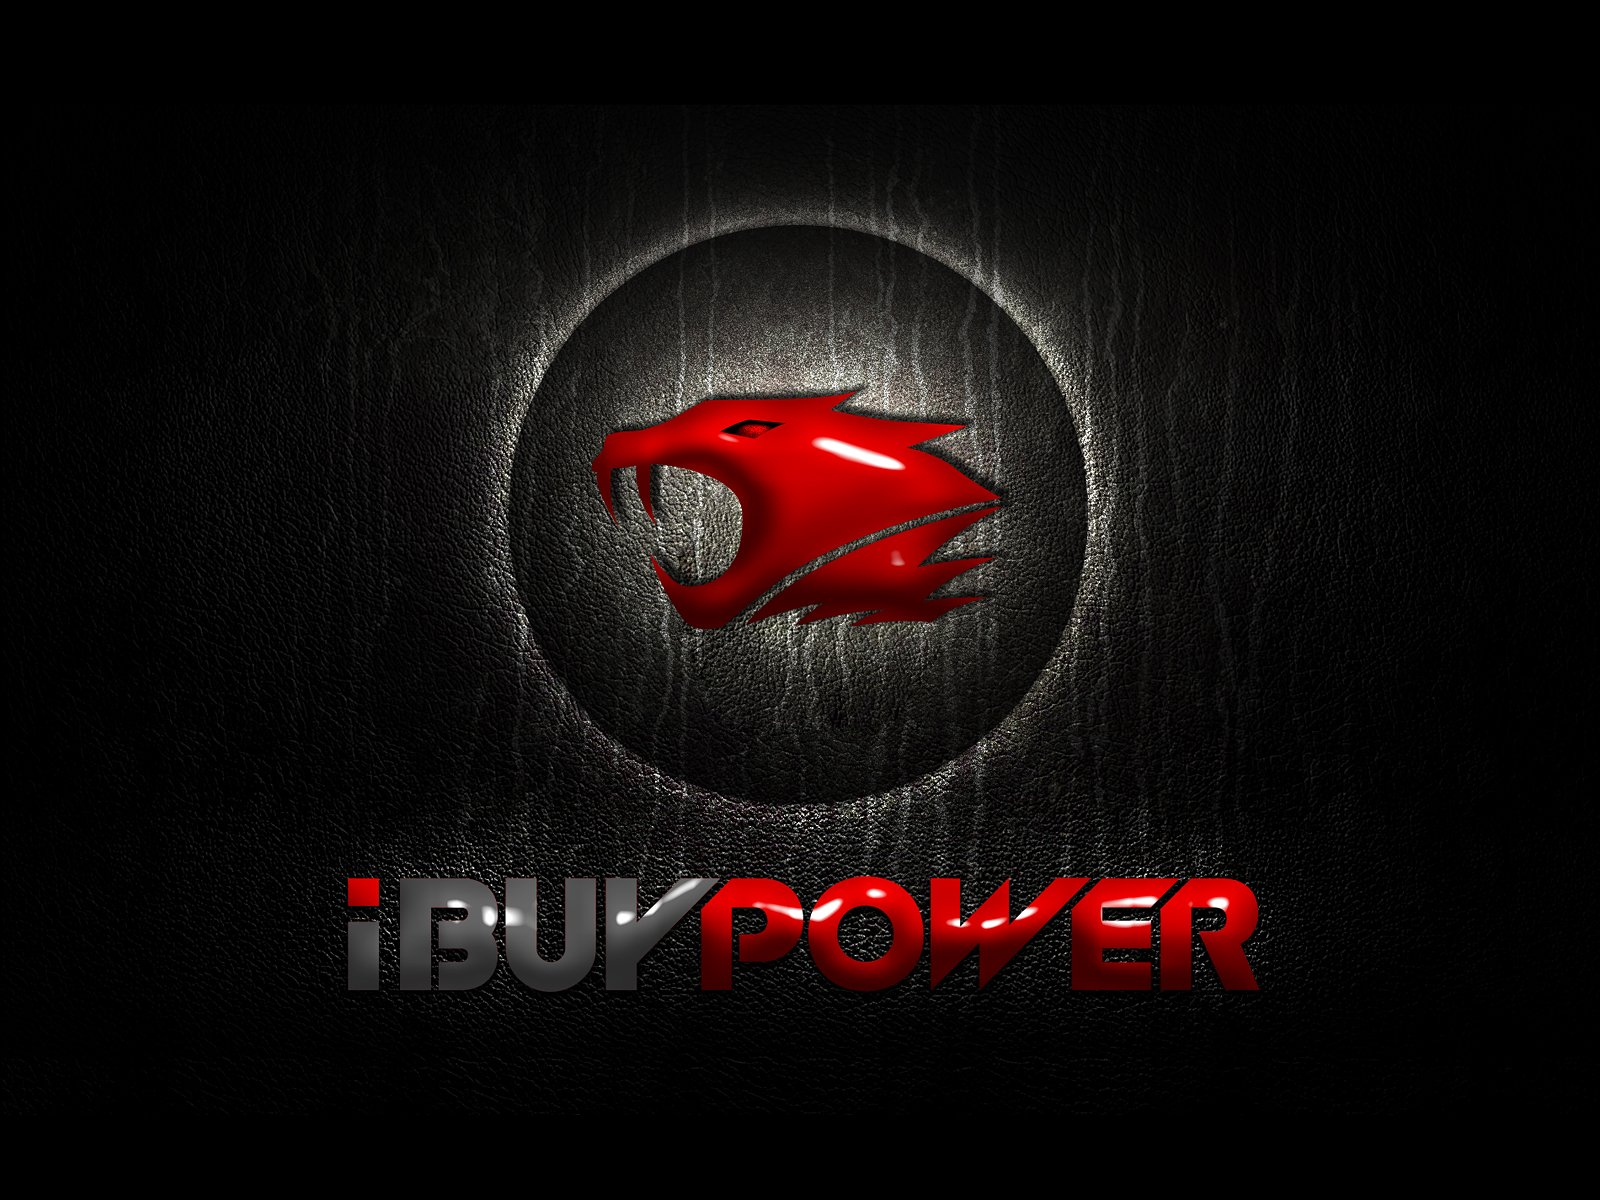 ibuypower logo wallpaper and background image 1600x1200